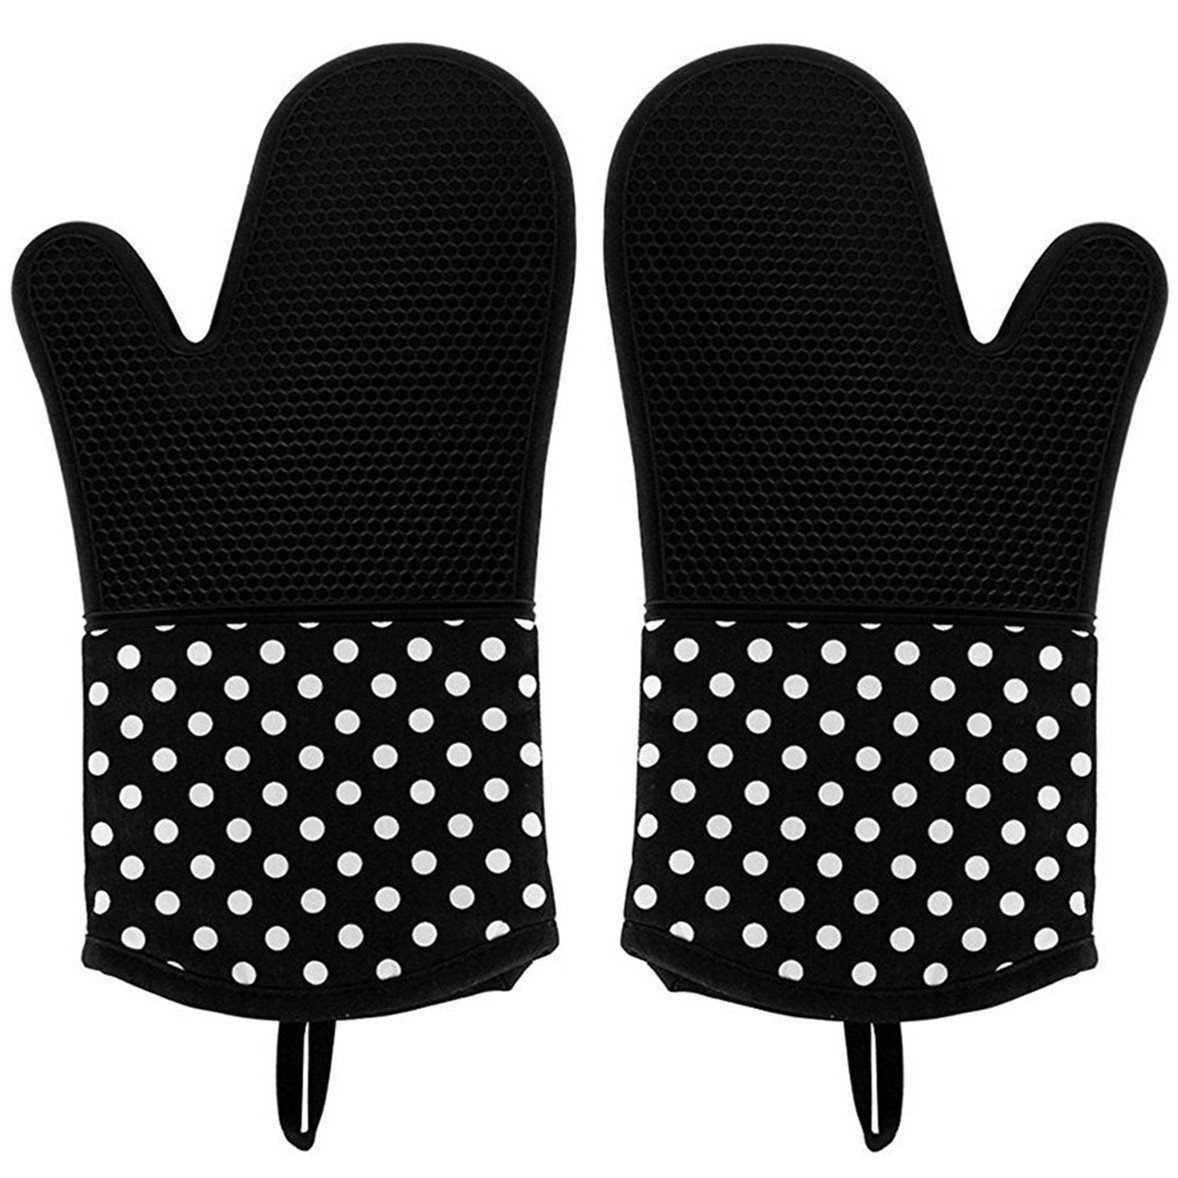 Tecare Kitchen Oven Gloves Silicone Oven Mitts Heat Resistant BBQ Gloves Non-Slip Pot Holders for Cooking Grilling Baking 1 Pair (Black)